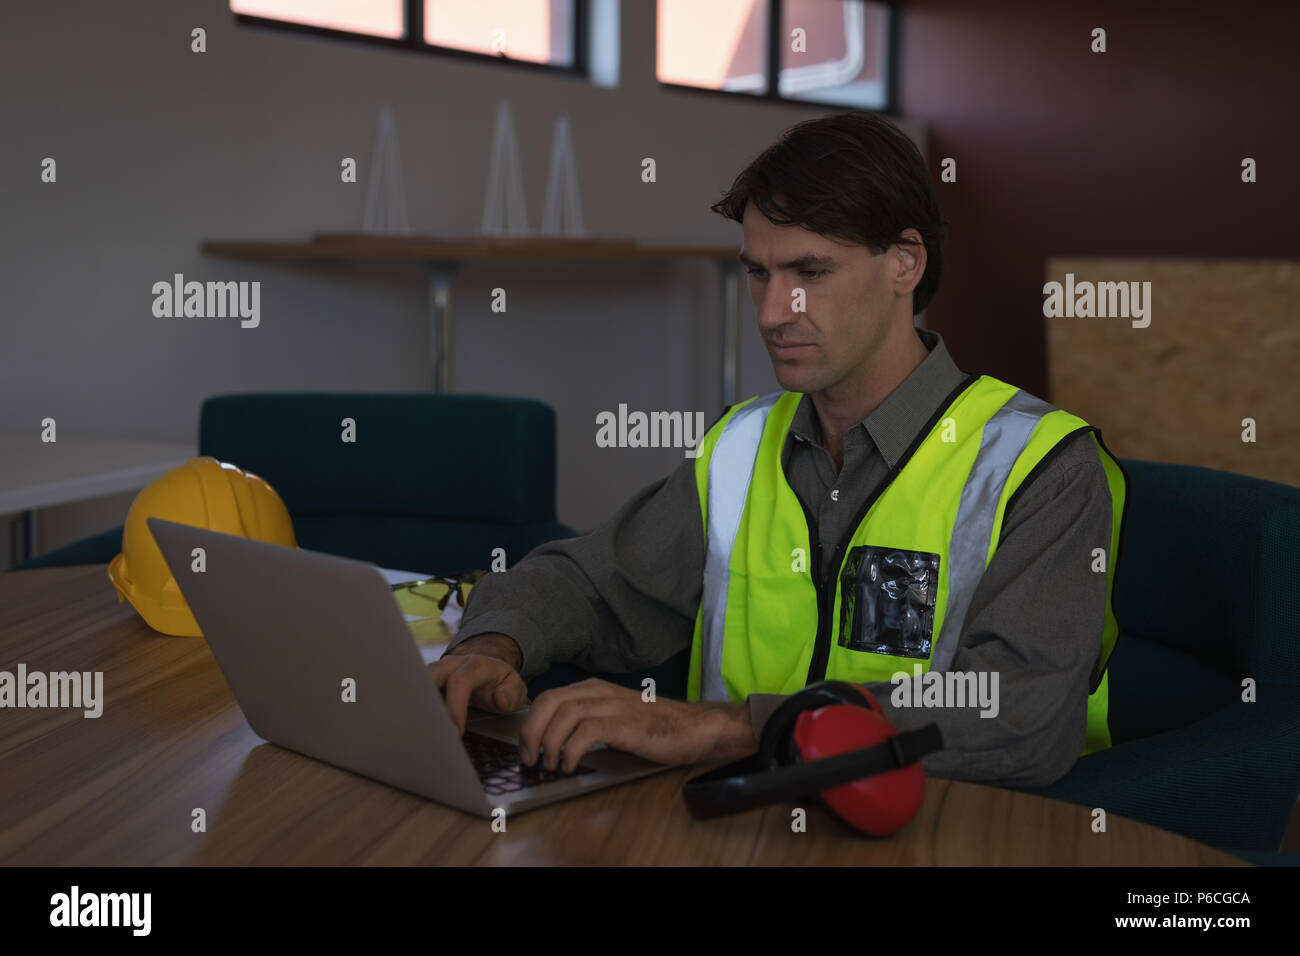 Male worker using laptop at desk - Stock Image